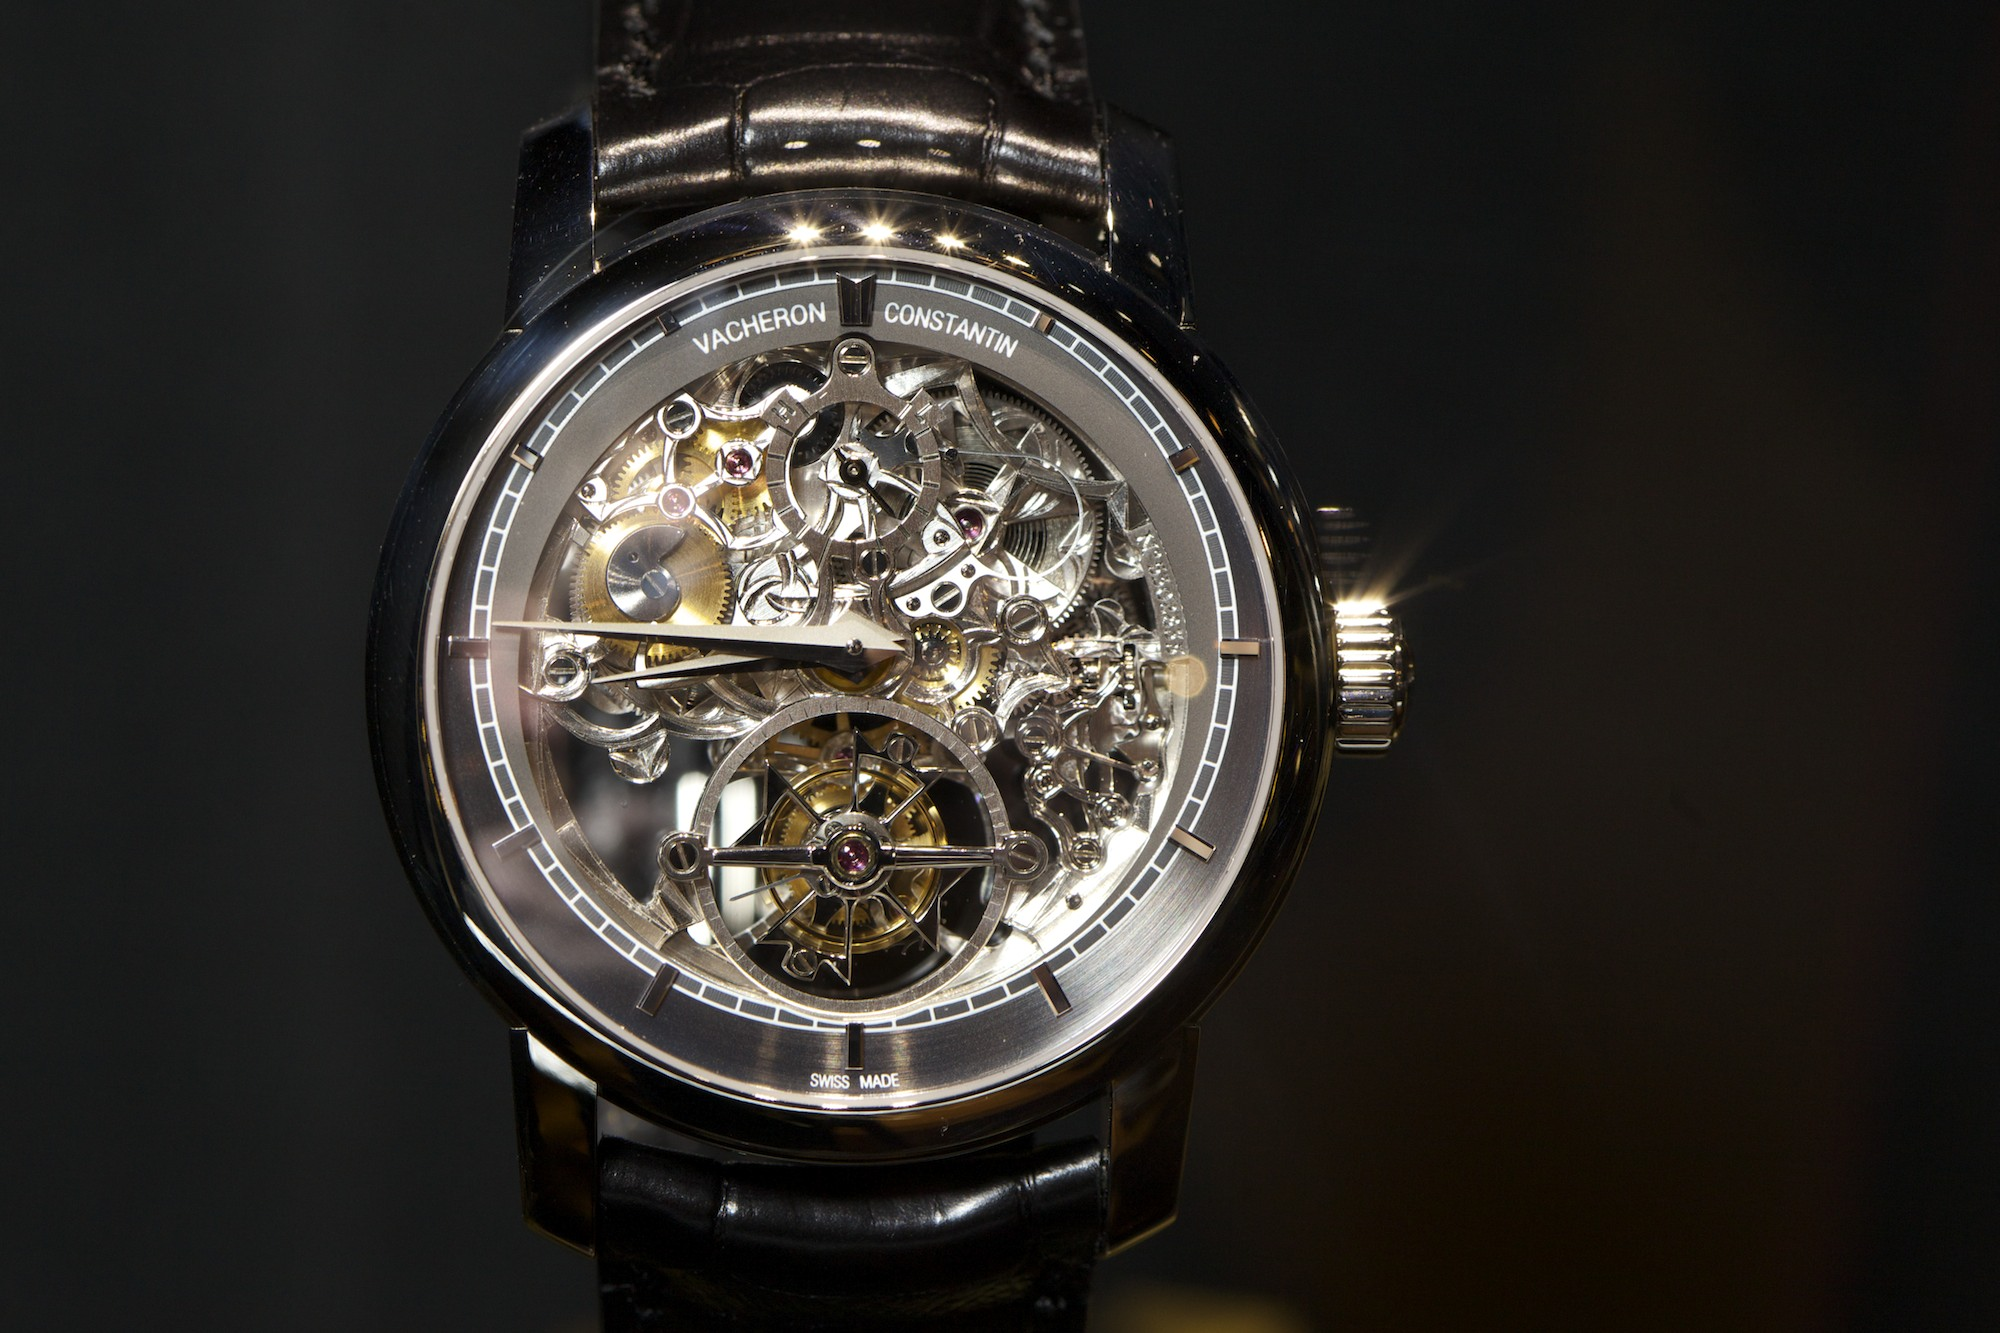 Vacheron Constantin Patrimony Traditionnelle 14 Days Tourbillon Openworked